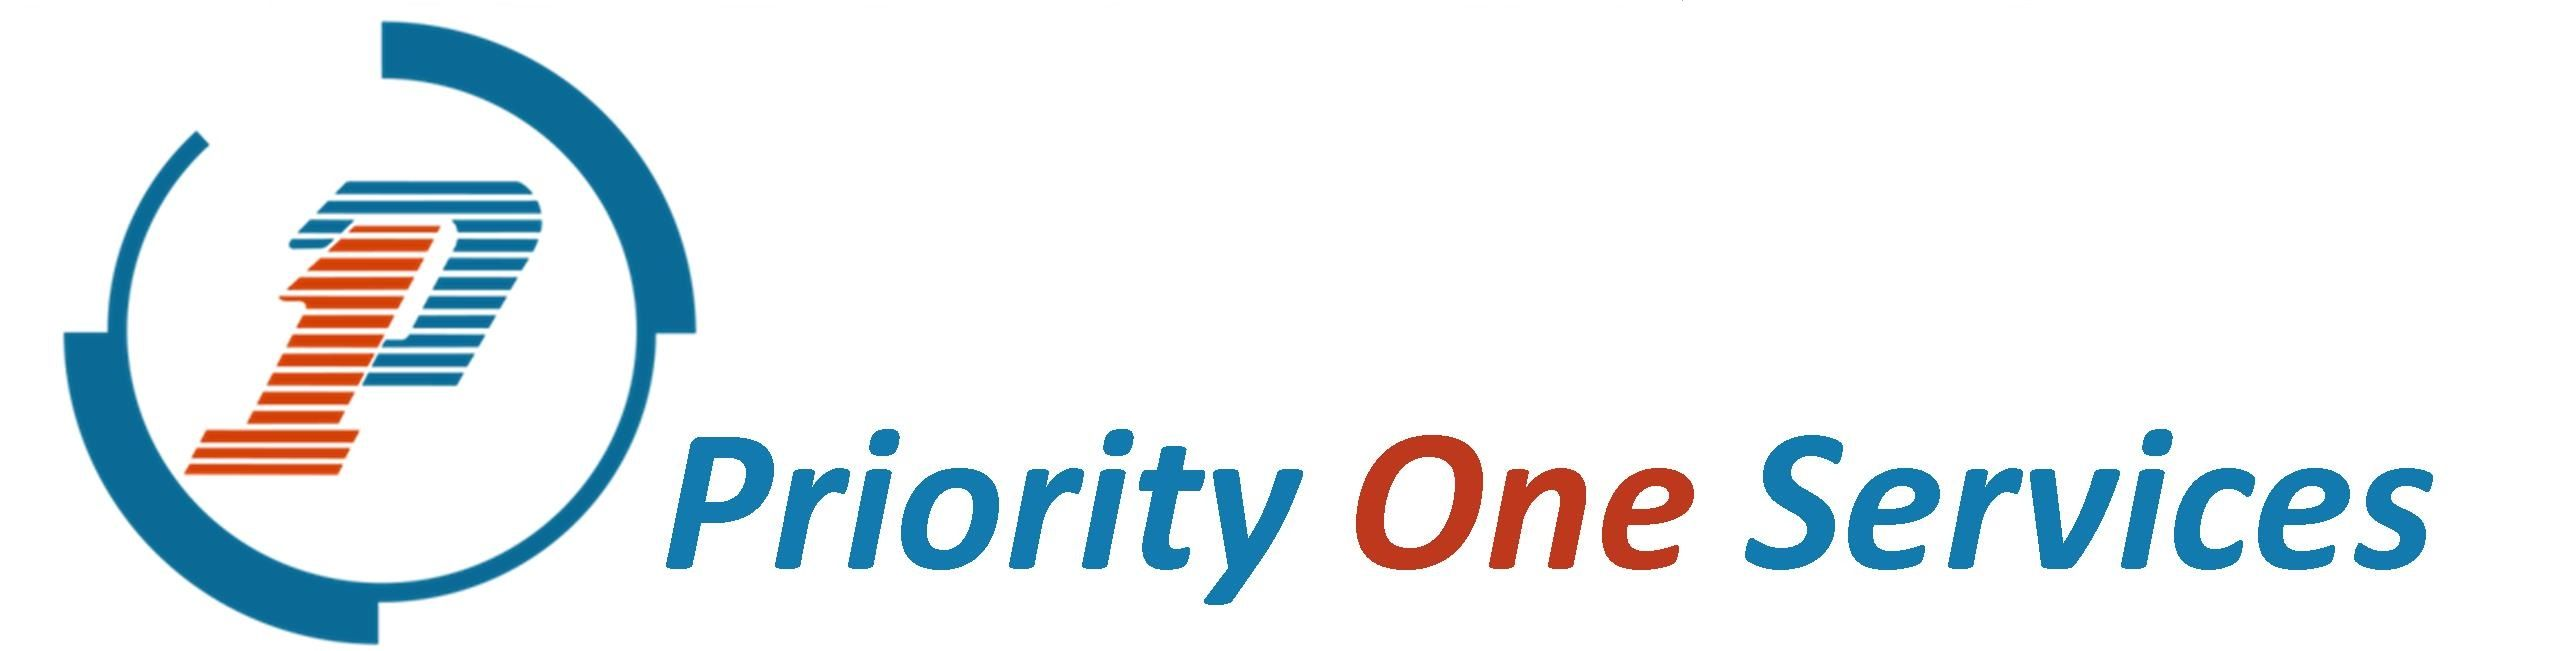 Priority One Services